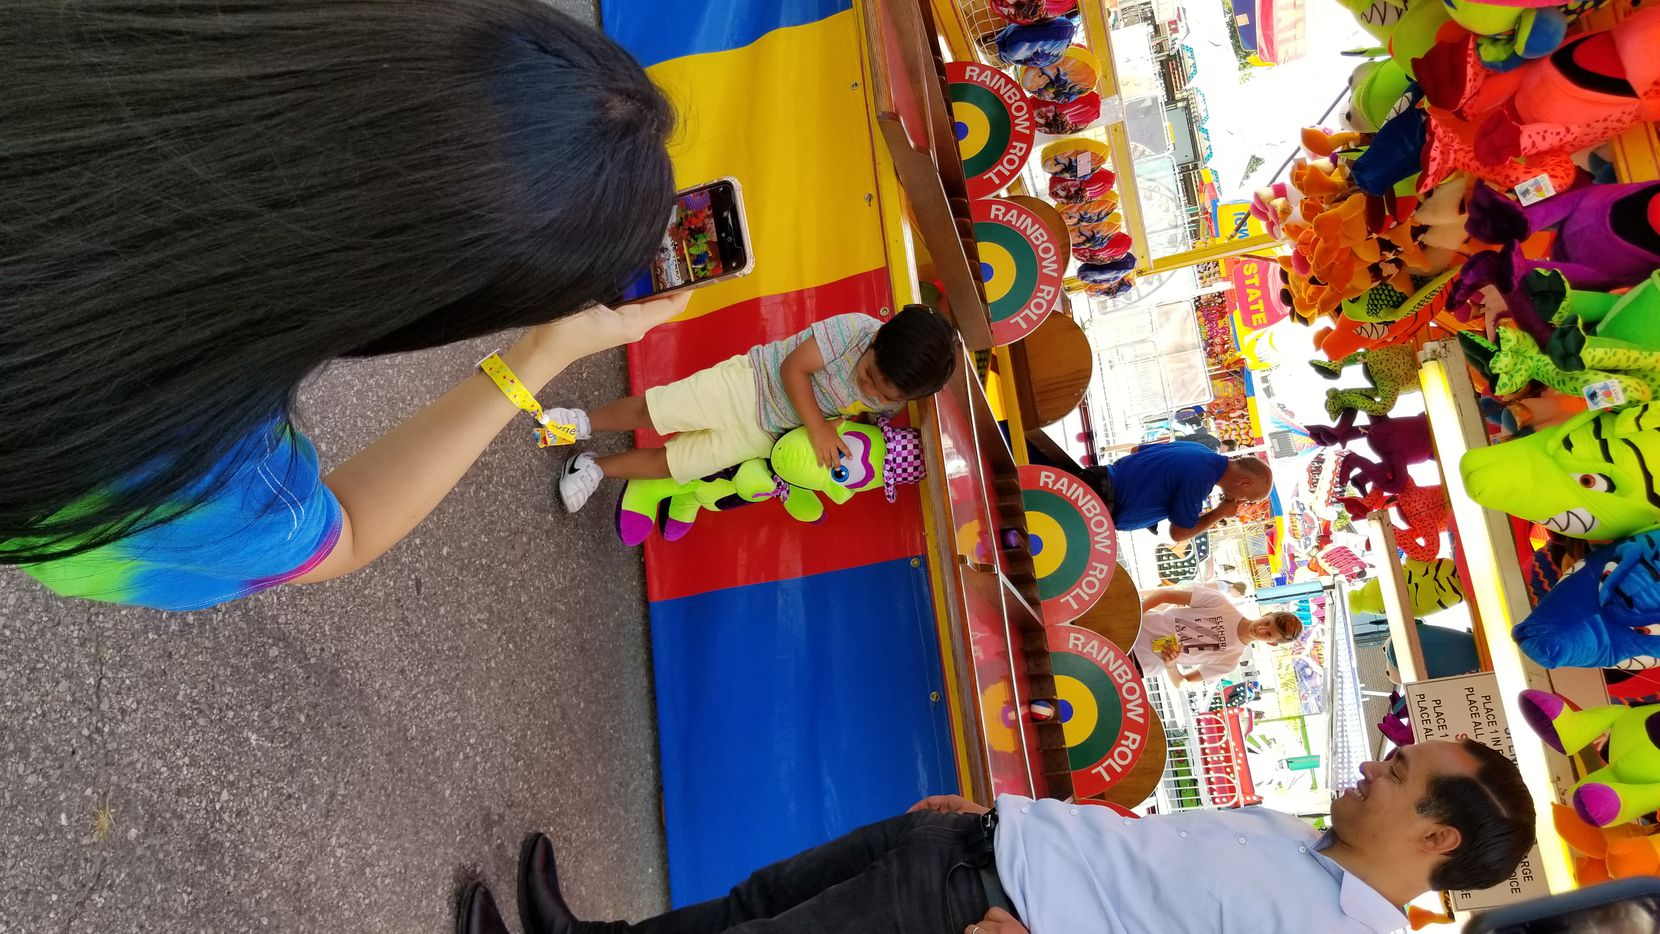 Cristián Castro, 4, won a plush neon green duck by rolling four balls each into a different color target. Proud dad Julián Castro is at right as his mom, Erica Castro, takes a photo of the trophy.